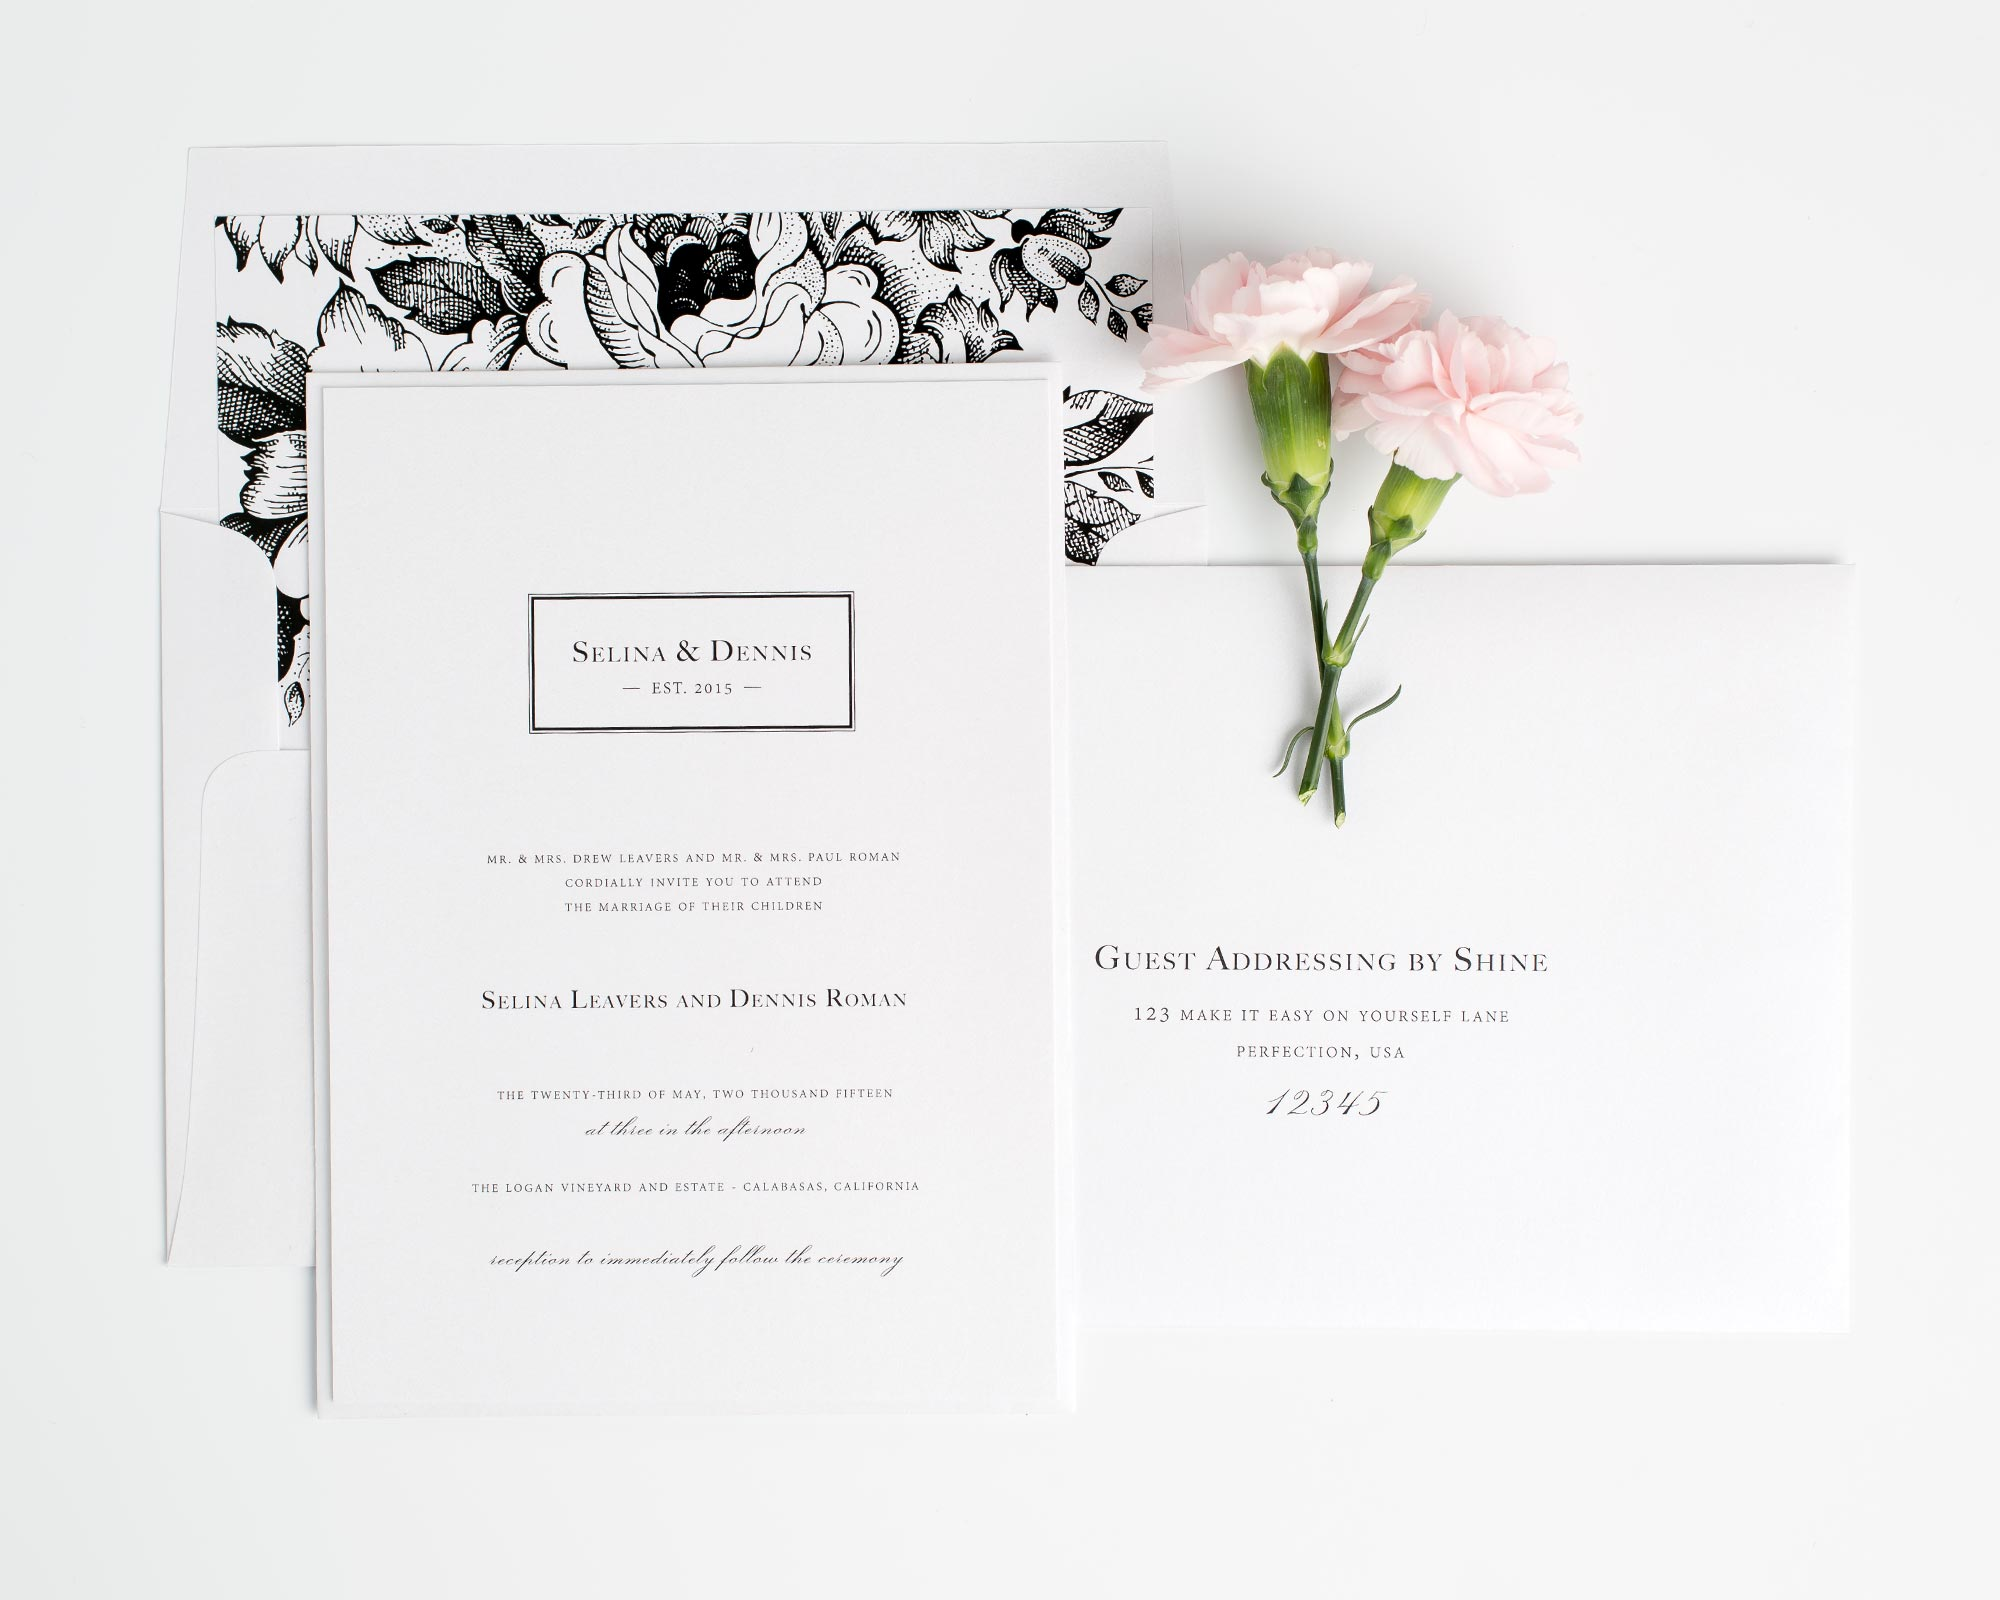 black and white floral wedding invitations with a monogram floral wedding invitations Monogram Floral Wedding Invitations